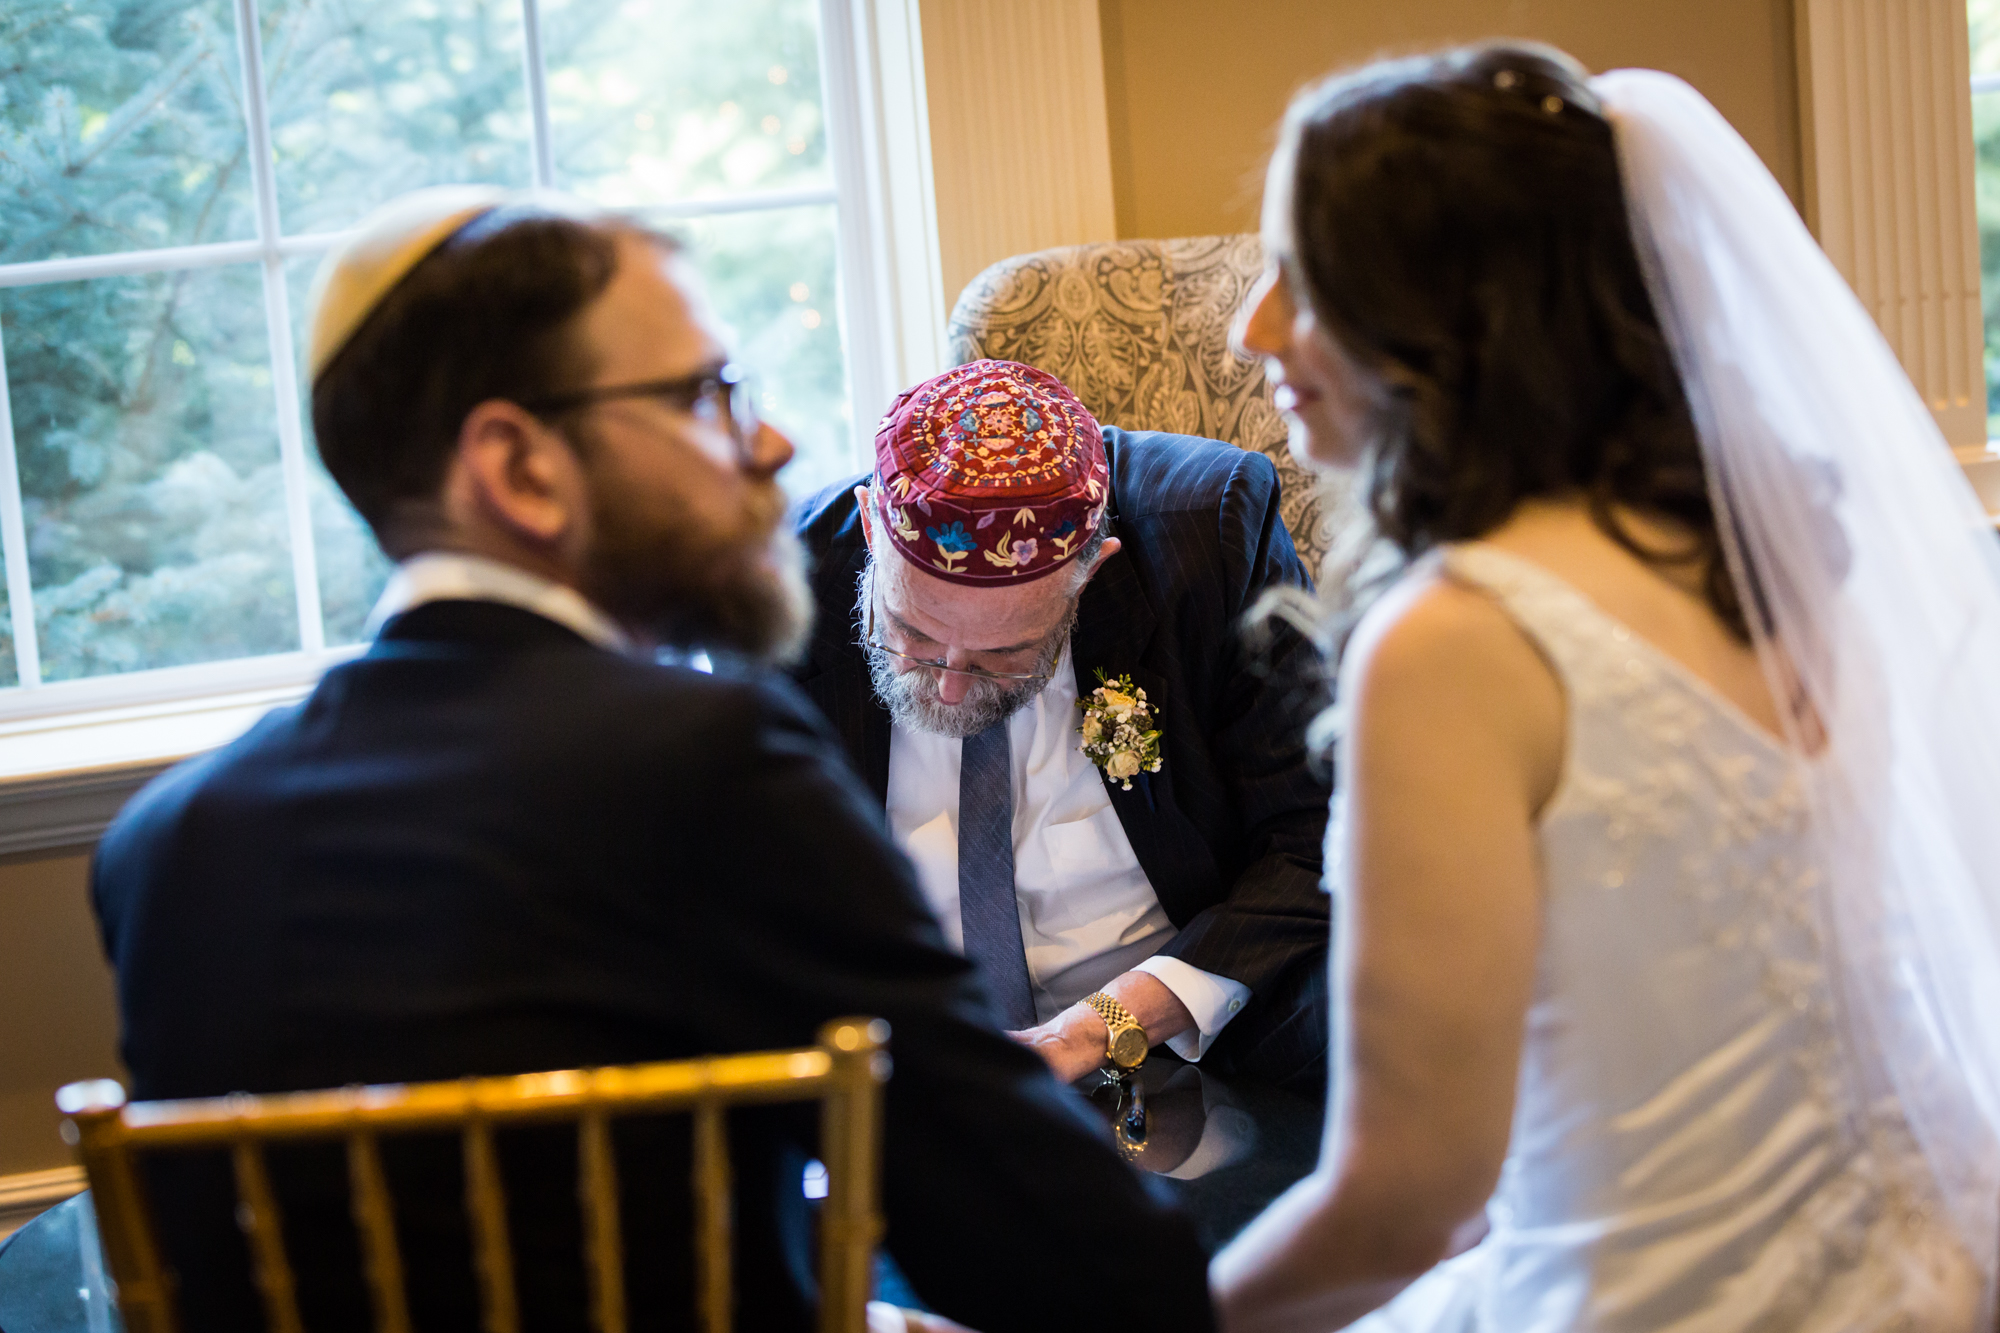 Bride and groom at ketubah signing for an article on band vs DJ